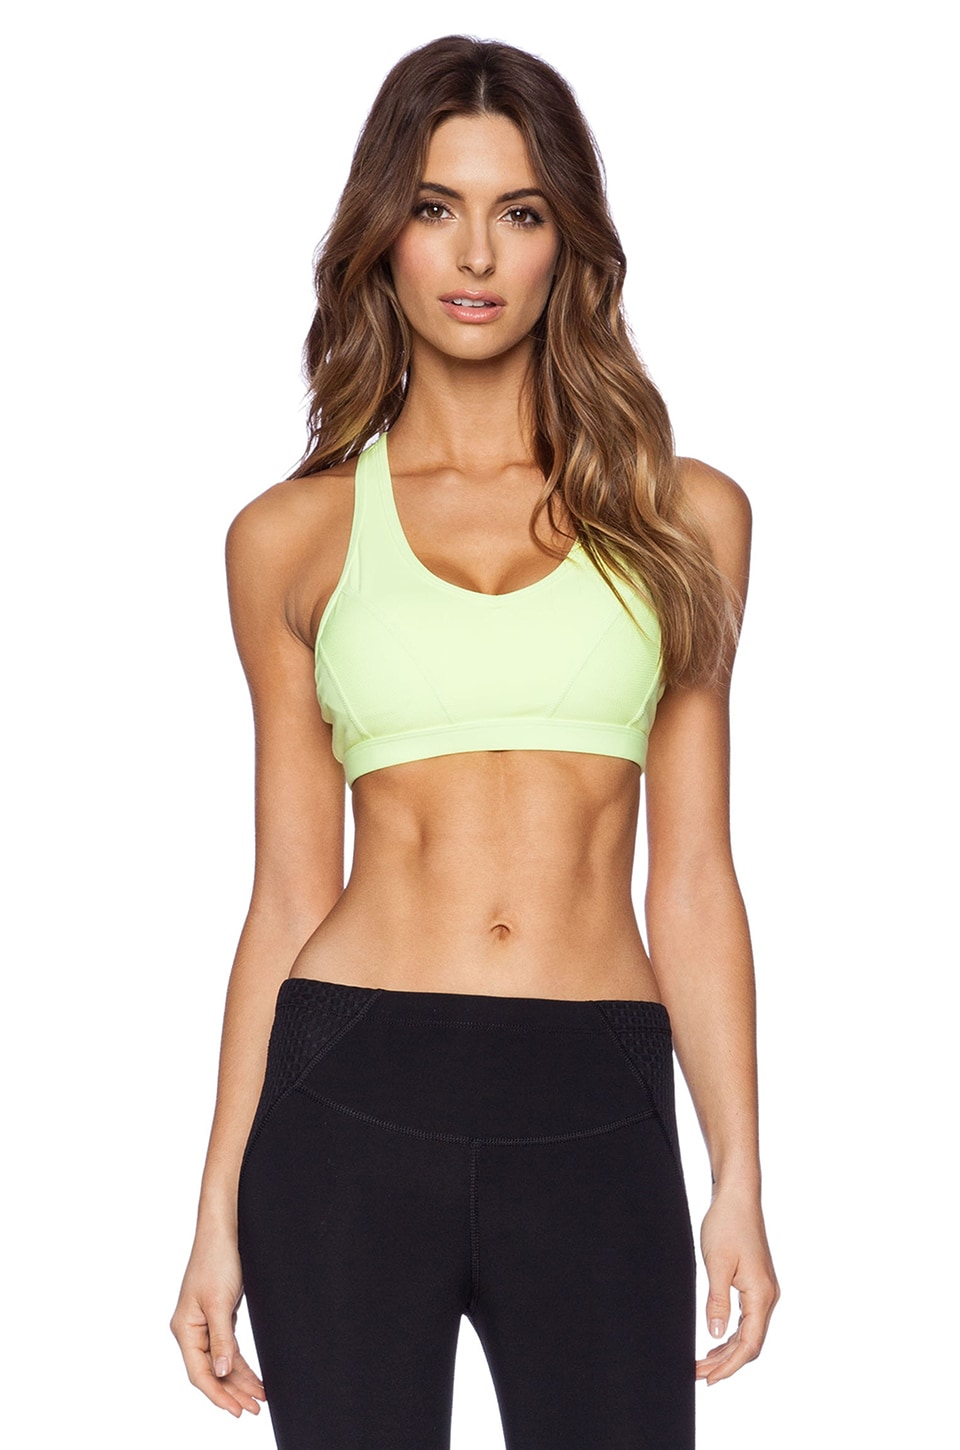 Lorna Jane Flawless Sports Bra in Neon Lemon Sorbet